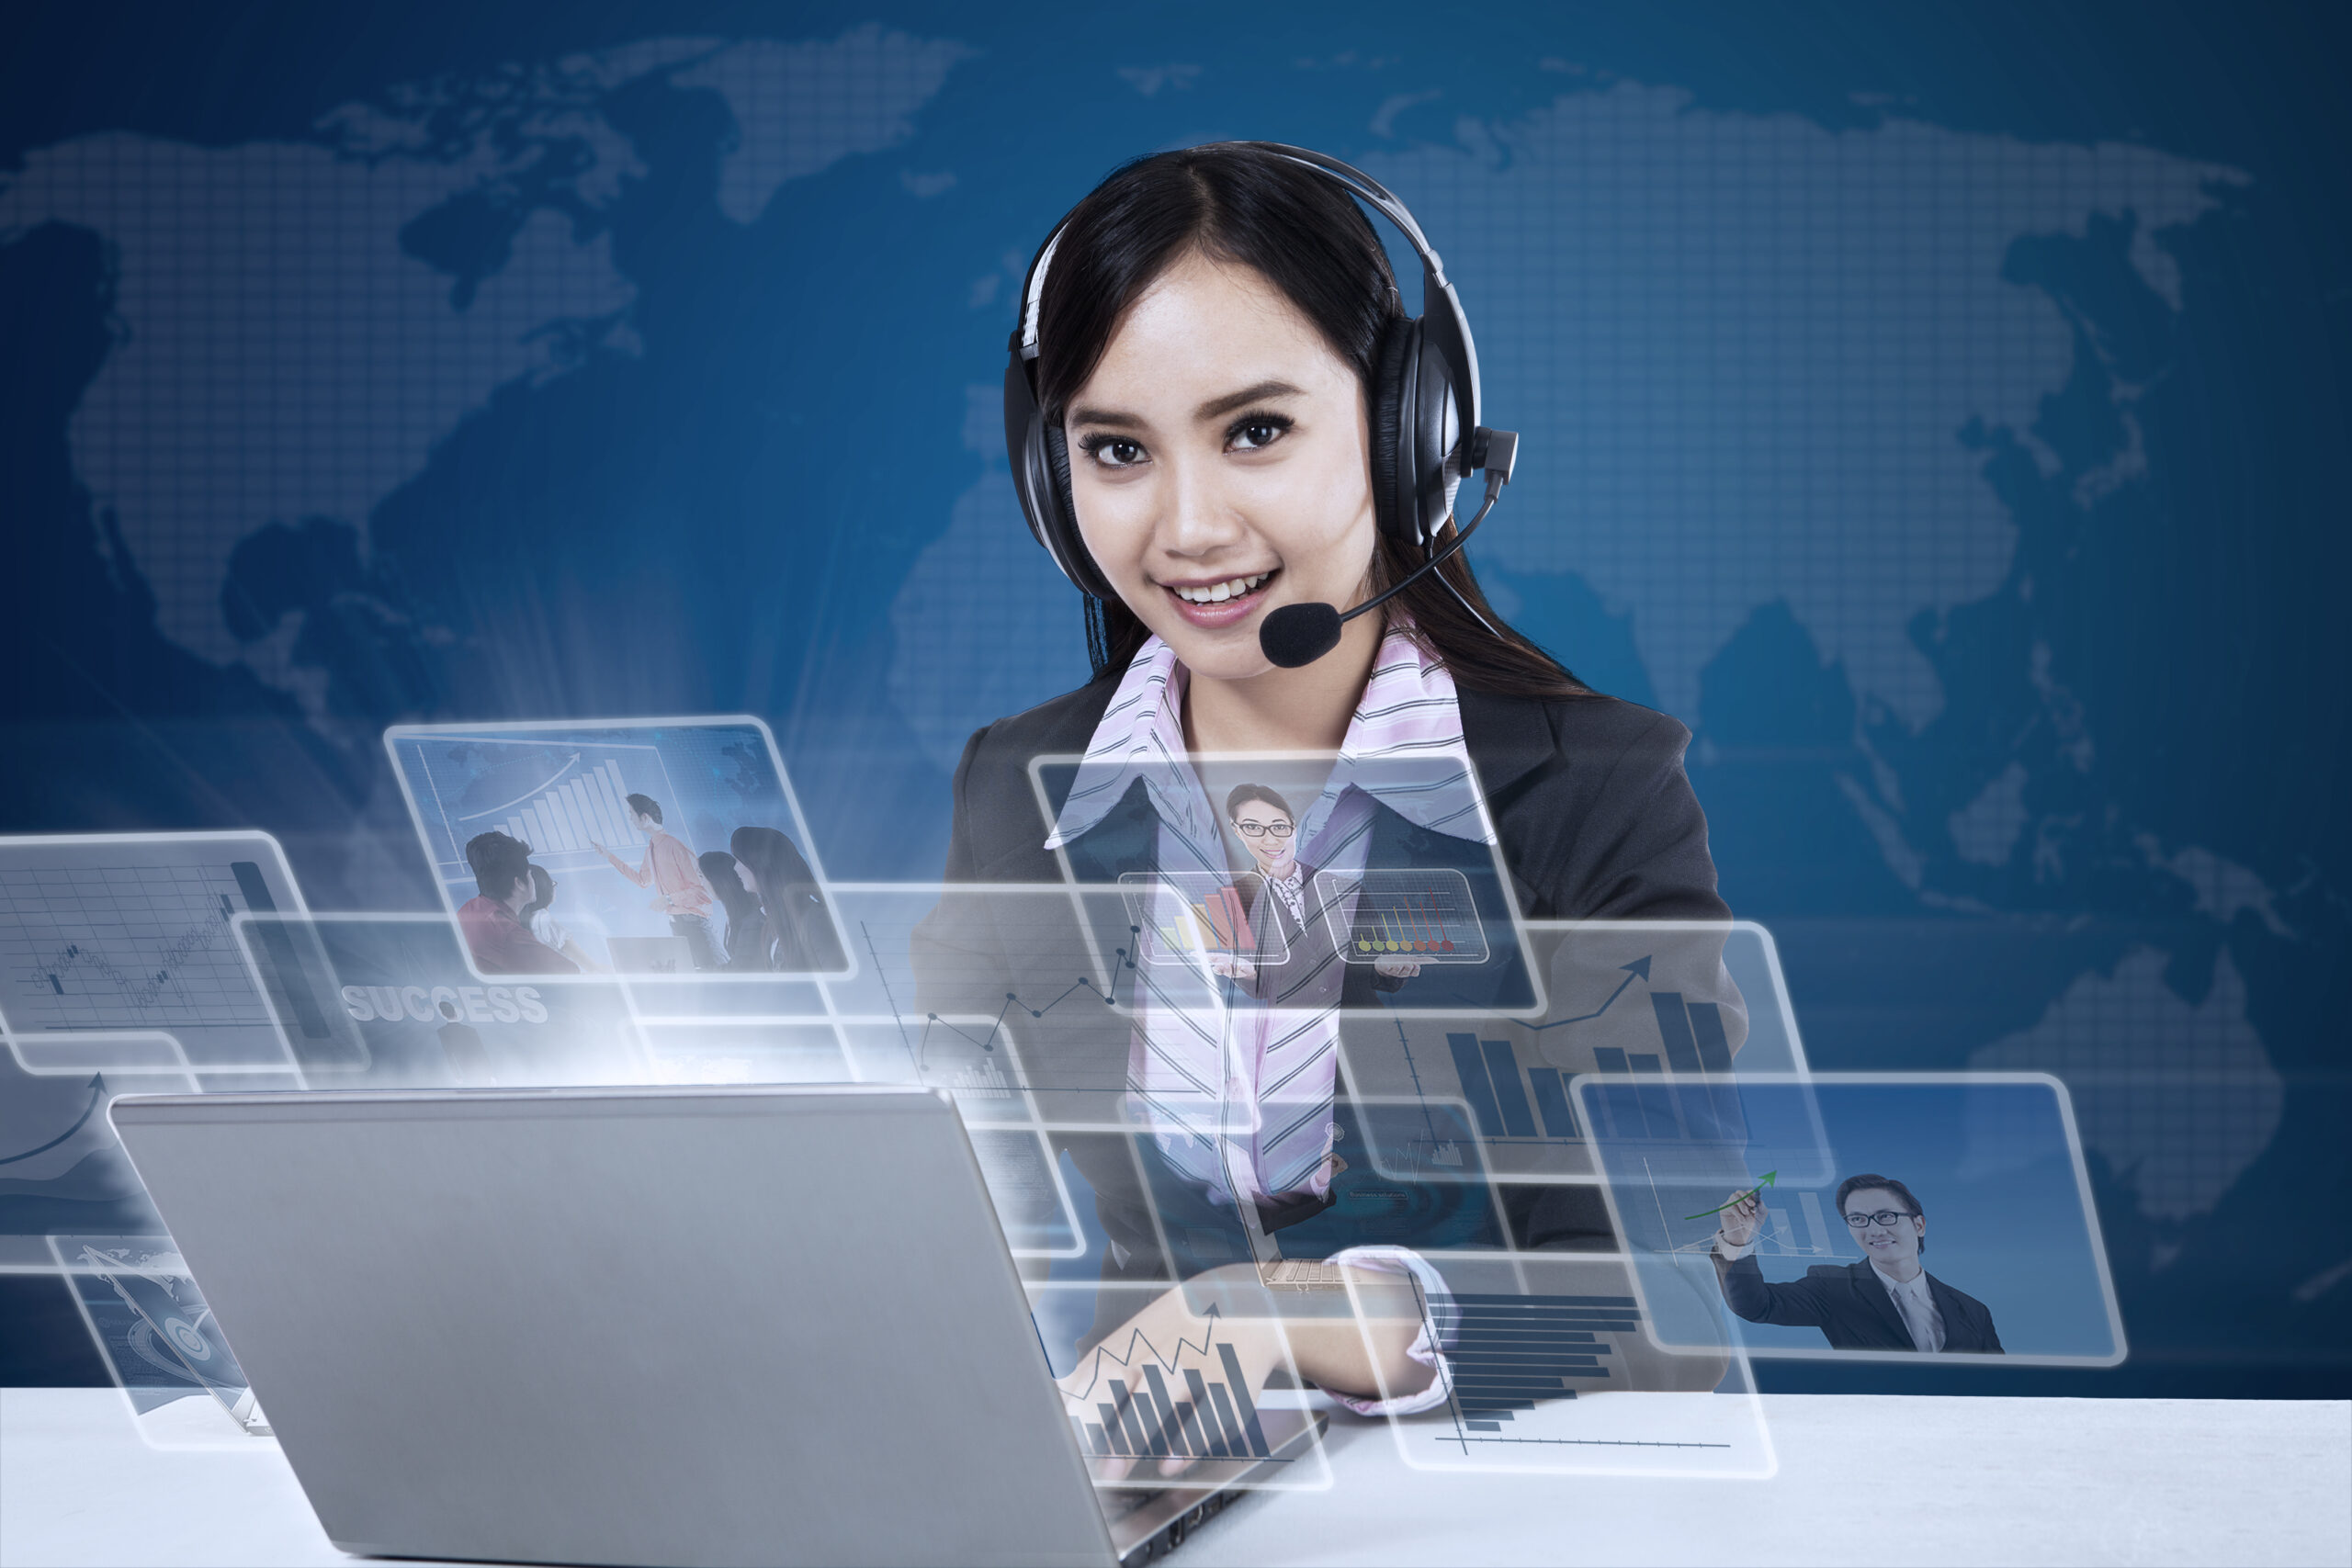 What Are the Benefits of Improved Customer Service?